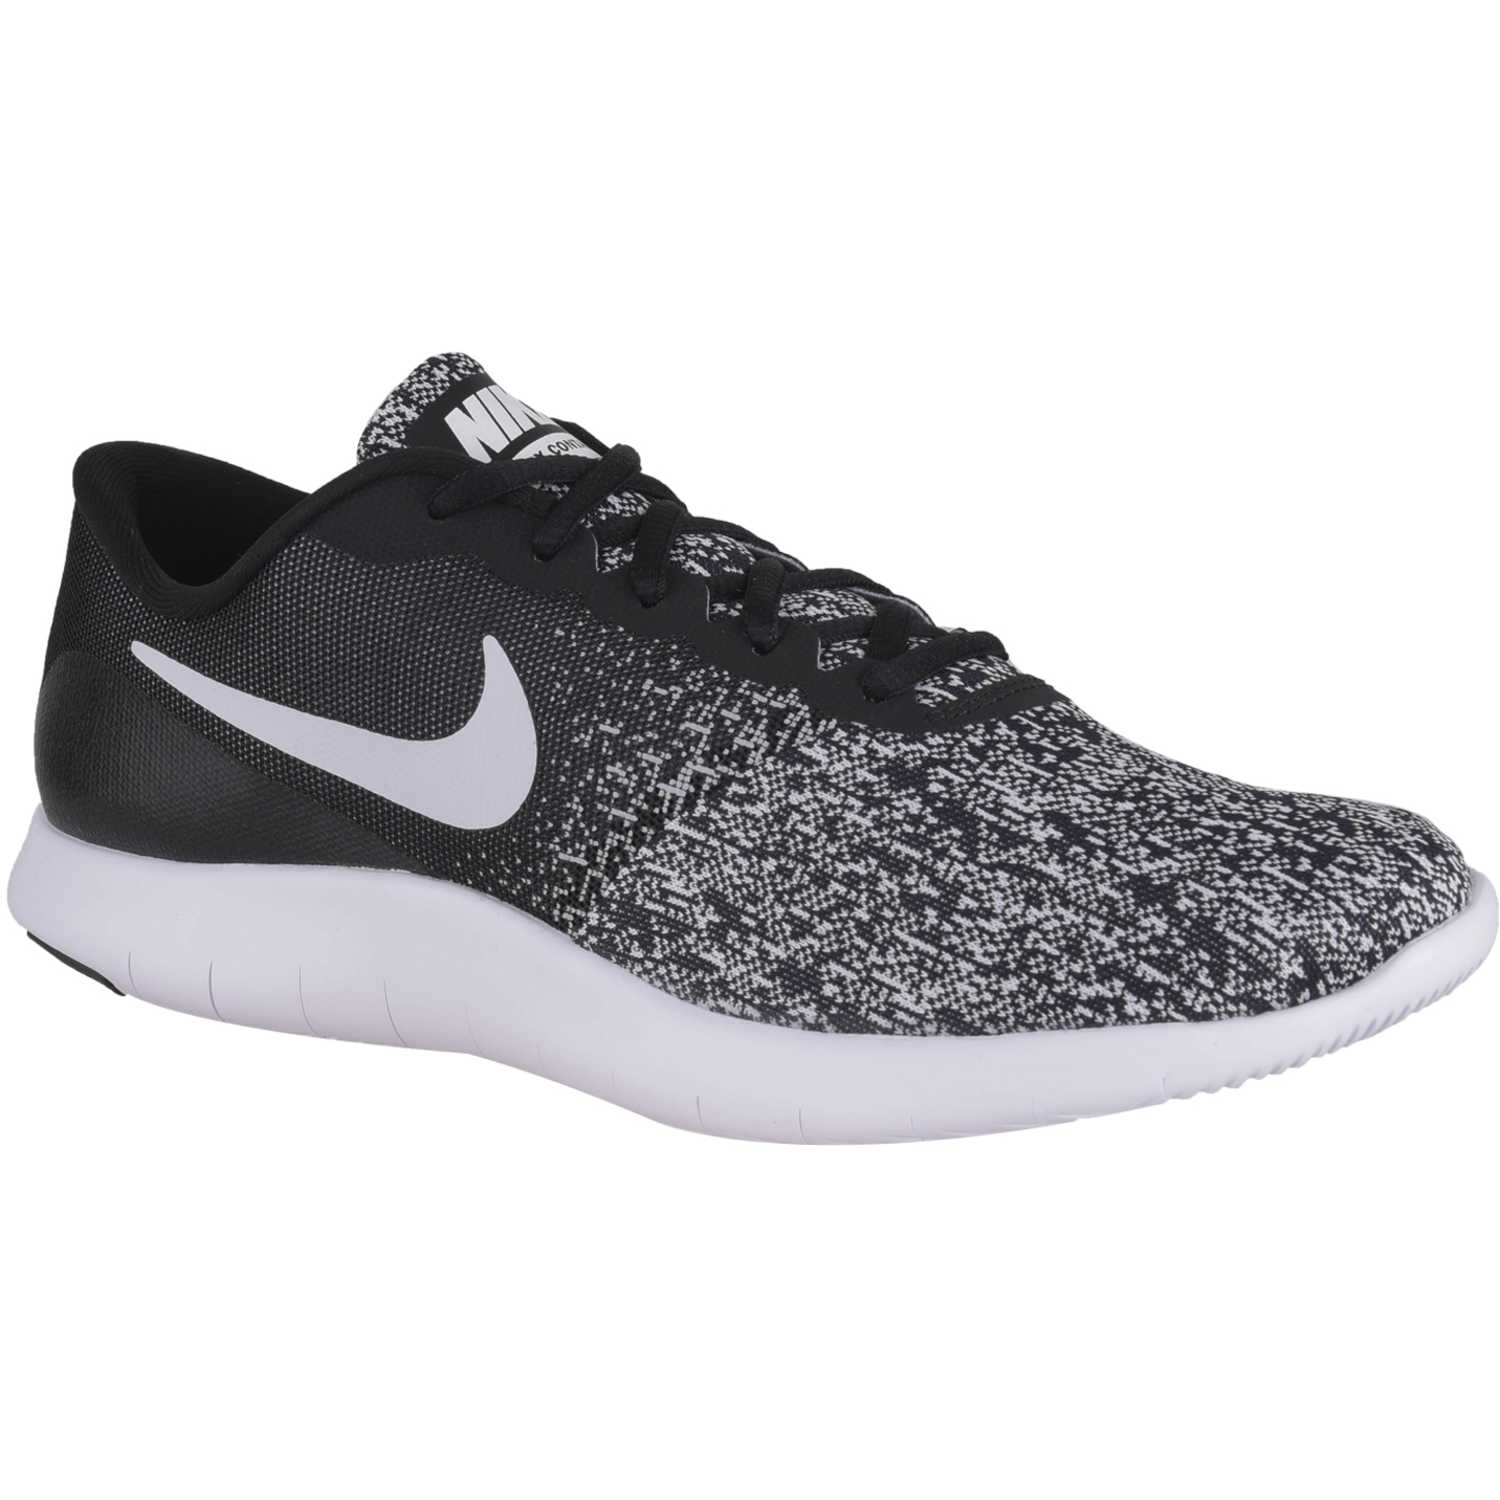 the latest 74f4b f3a70 Zapatilla de Hombre Nike Negro  blanco flex contact